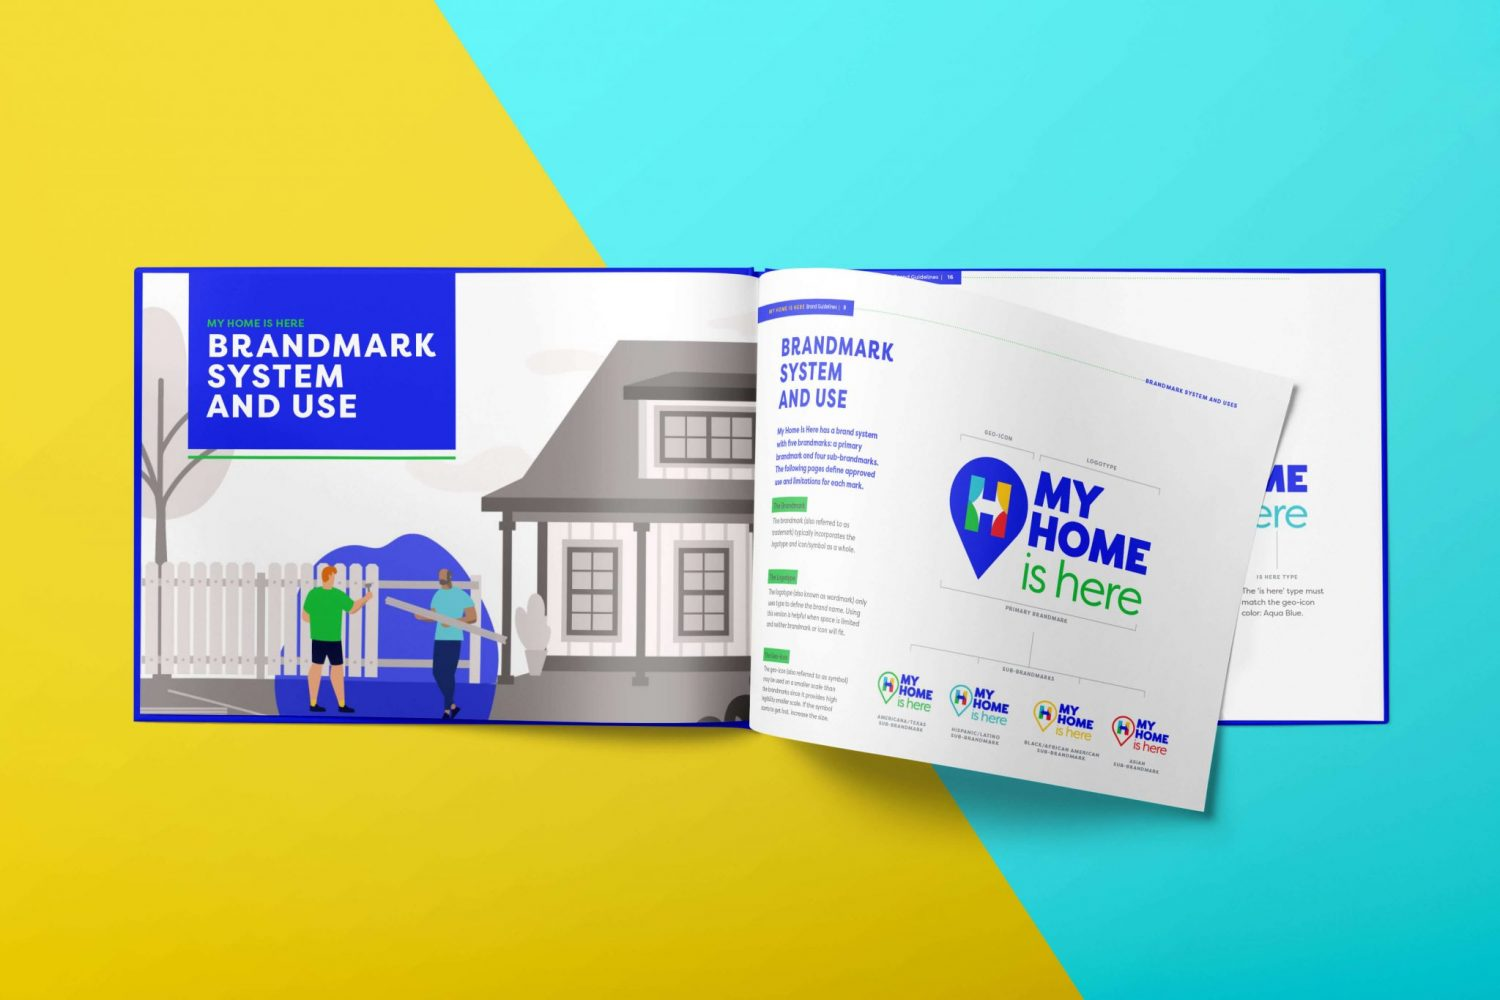 My Home is Here Branding by Nicte Creative Design